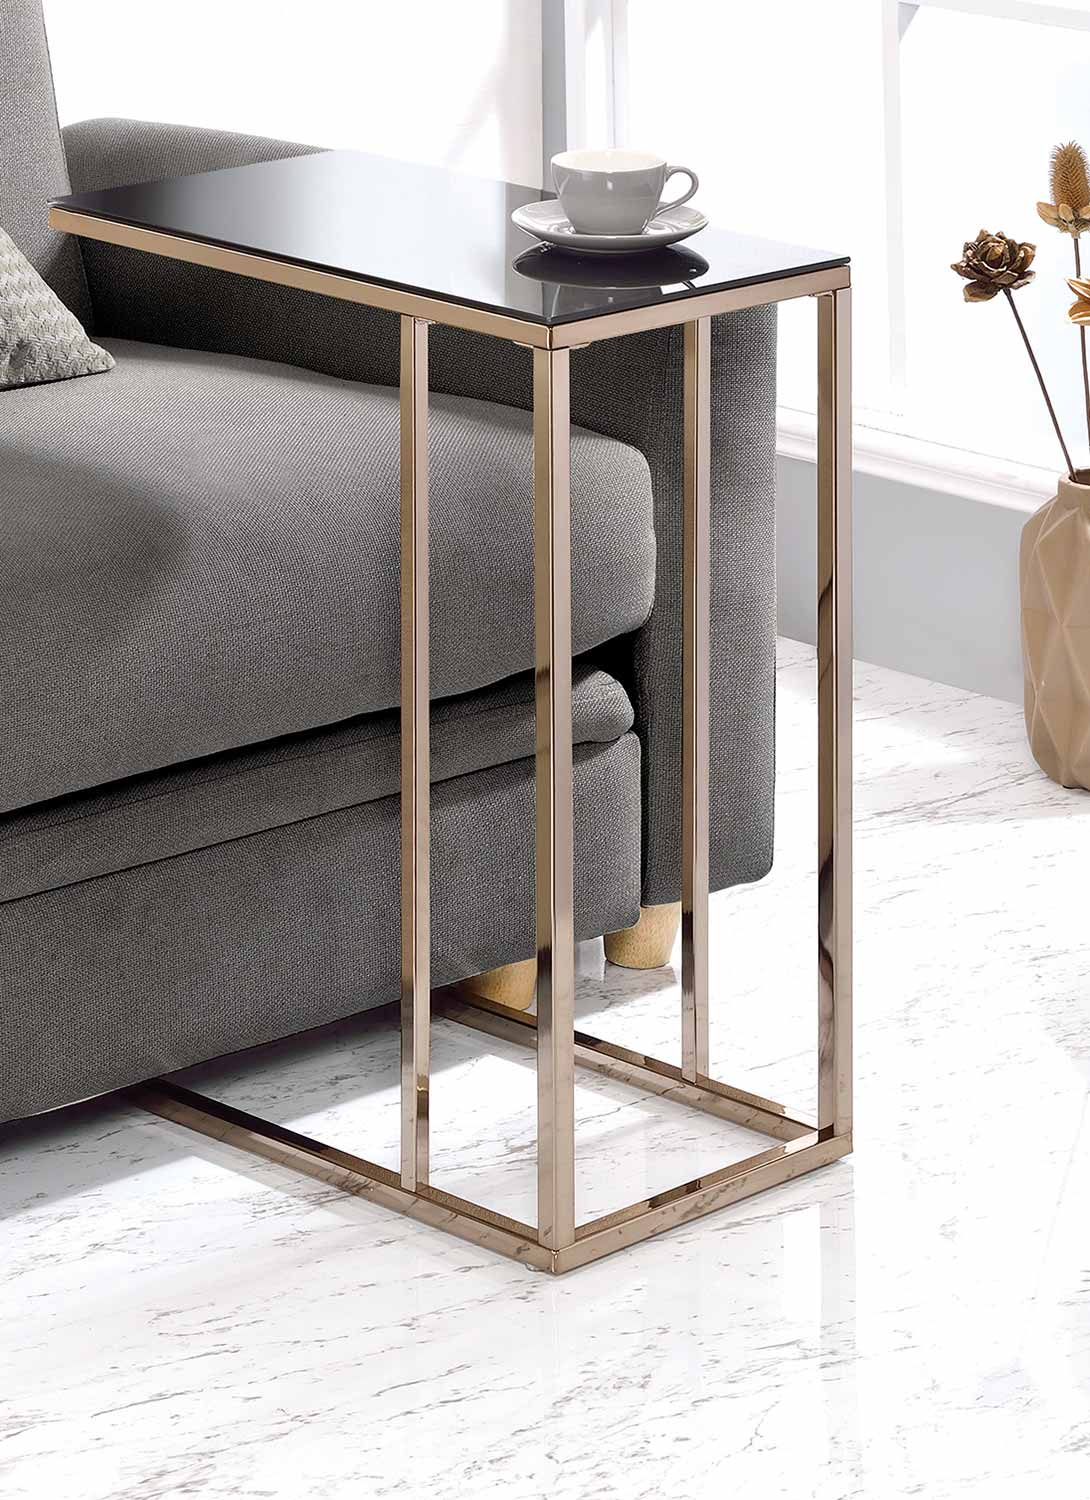 Coaster 902928 Accent Table - Black Glass/Chocolate Chrome